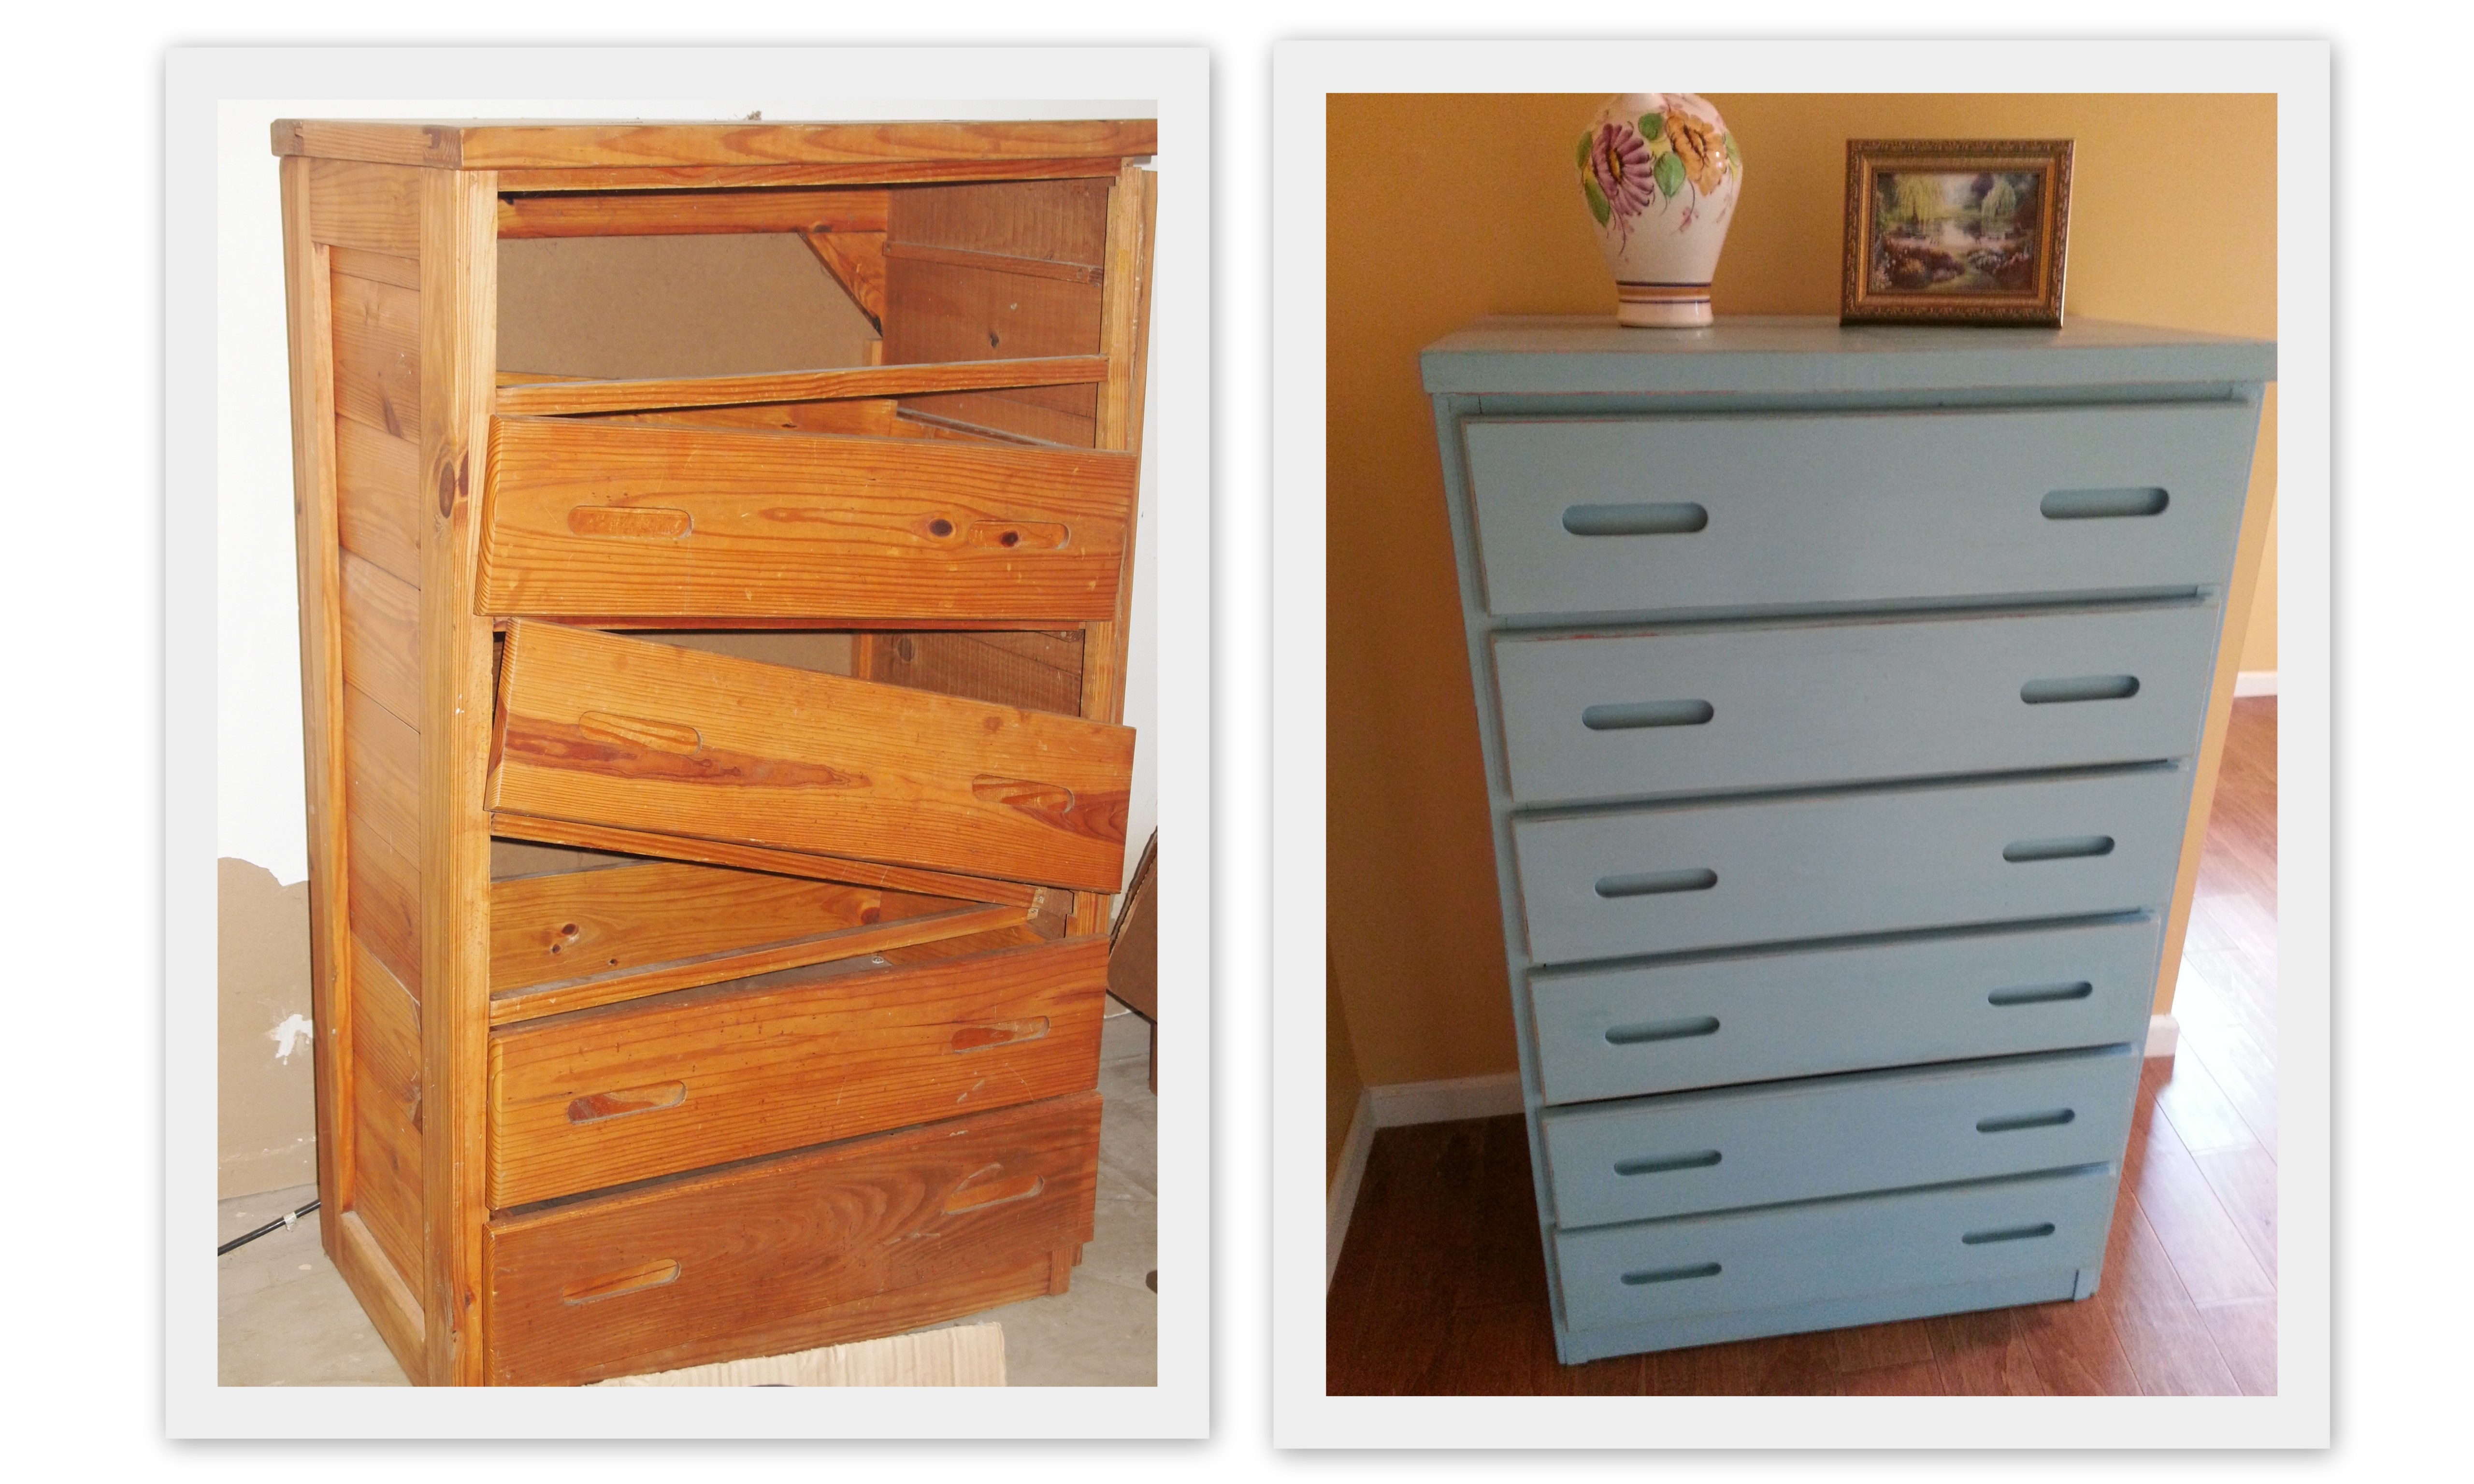 Repairing and Painting Crate Furniture – Hudson Valley